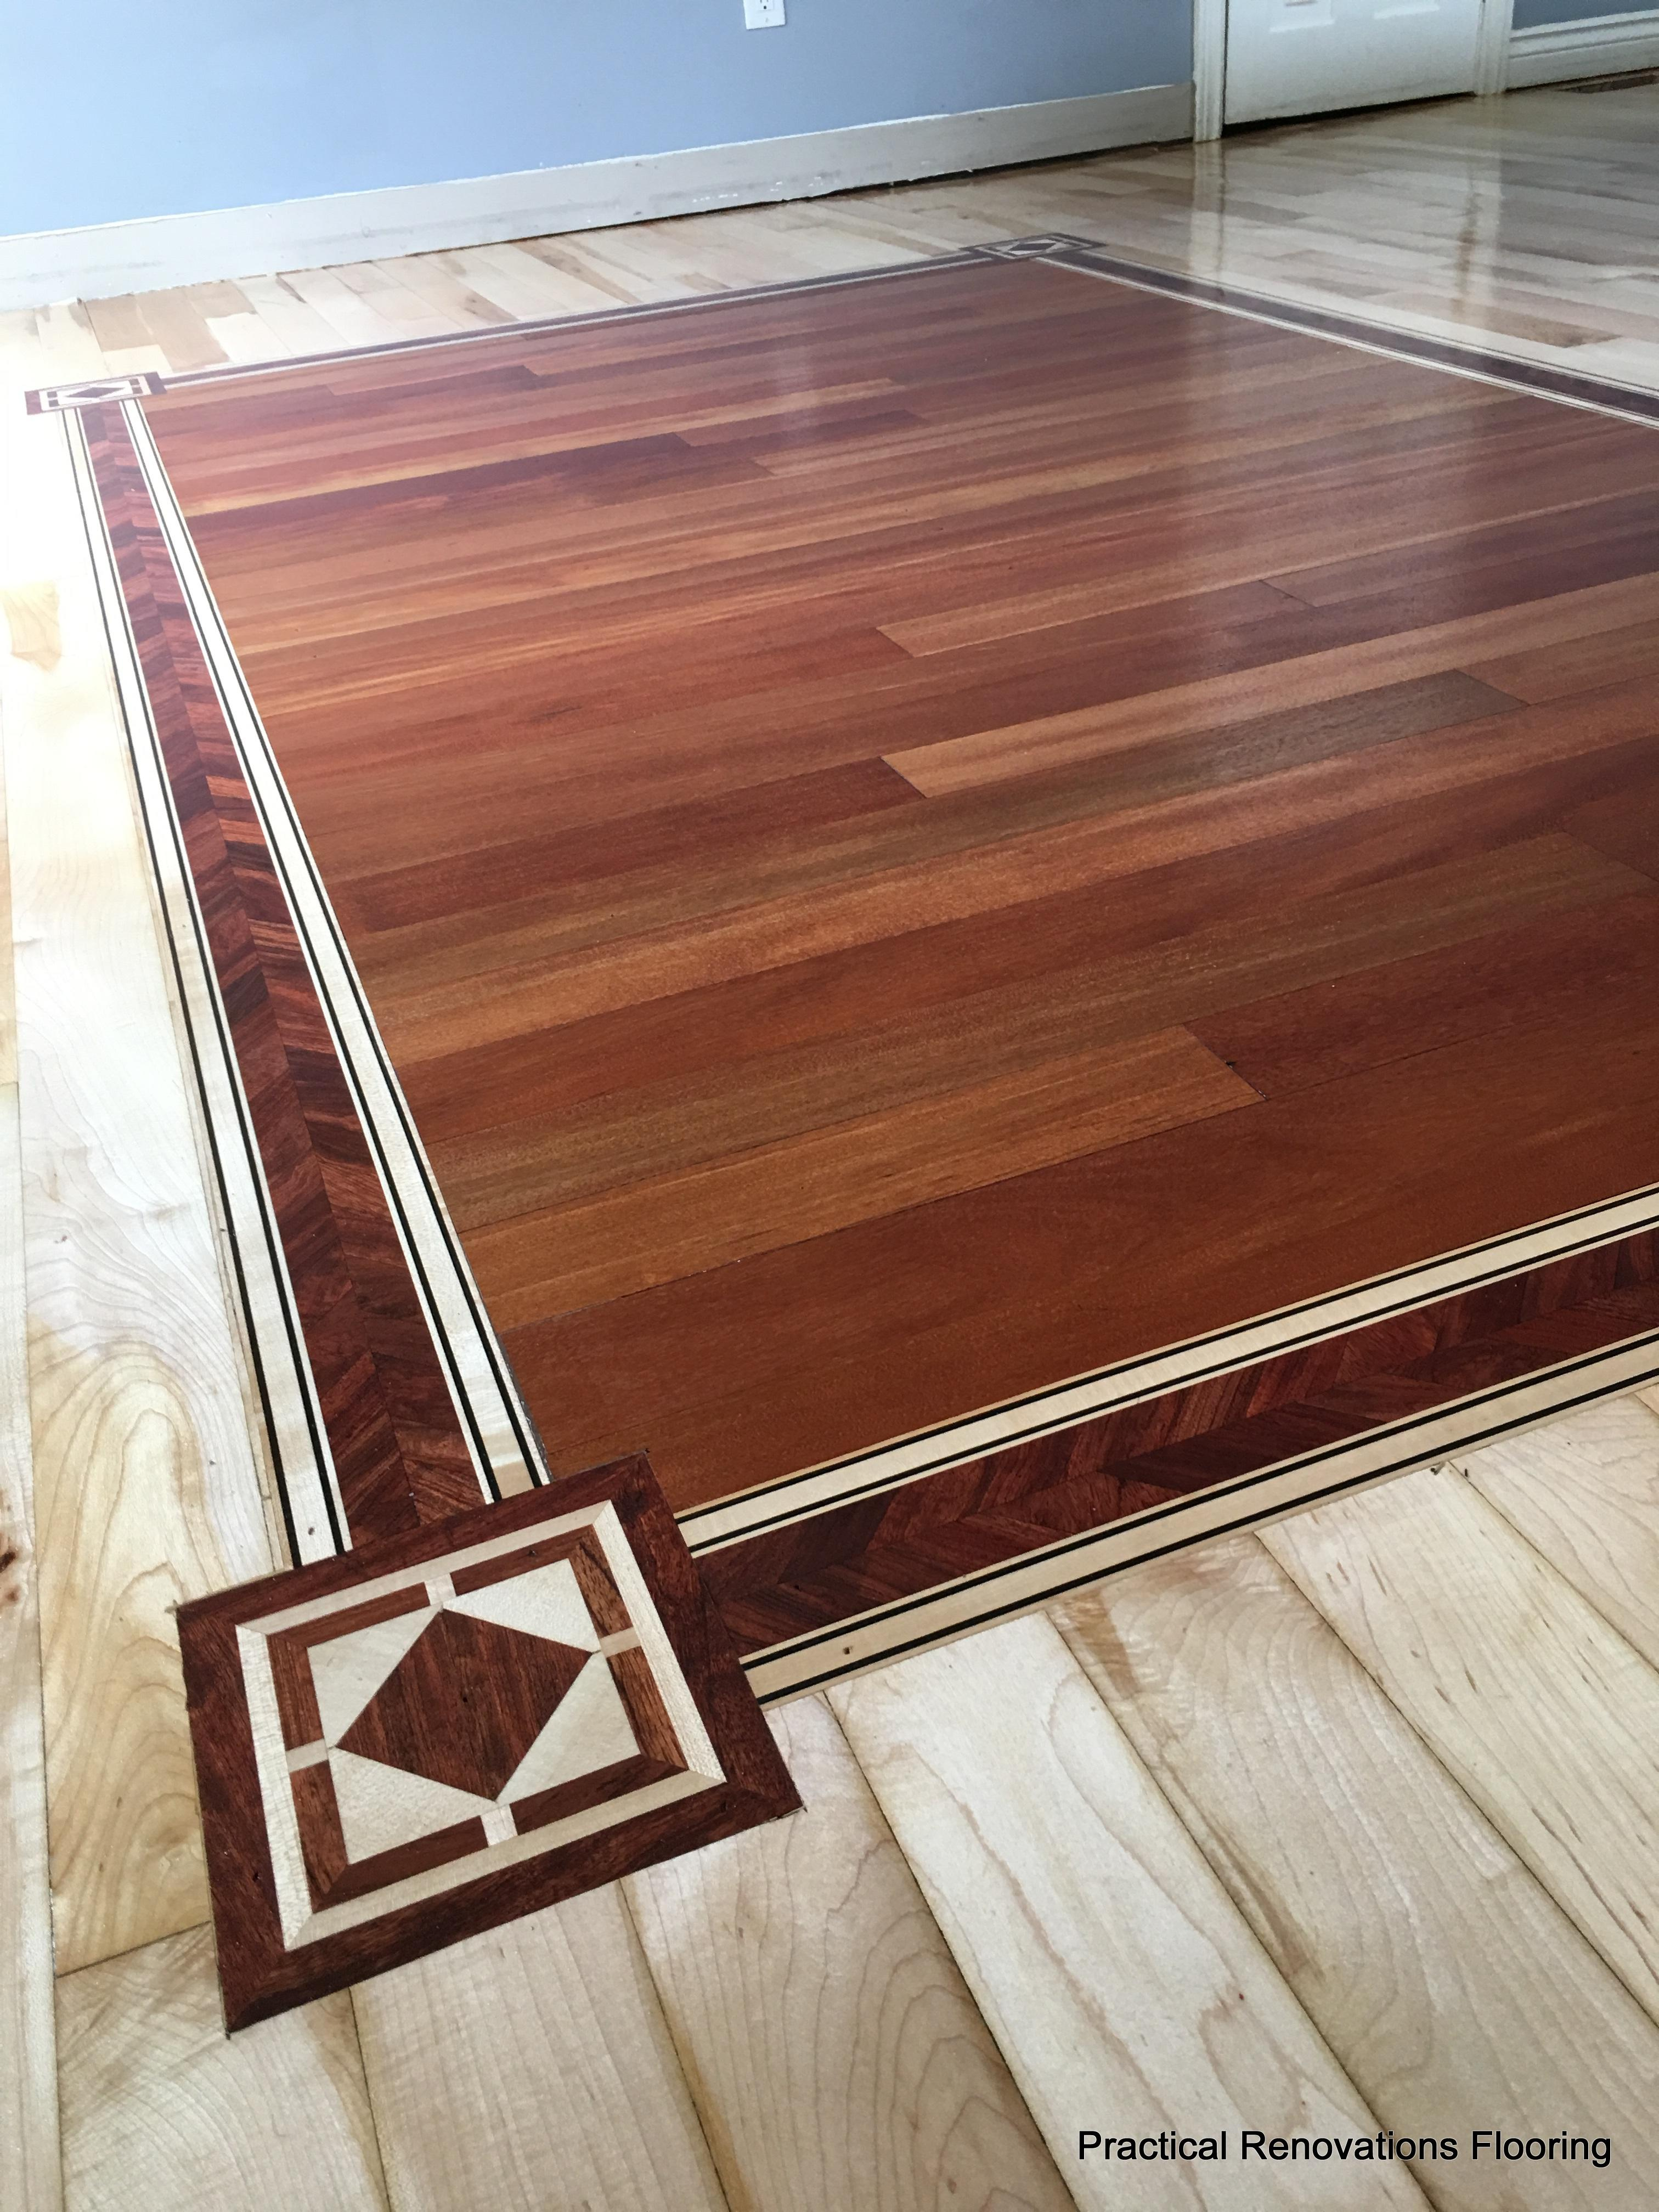 Practical renovations wood floors coupons near me in for Hardwood flooring near me